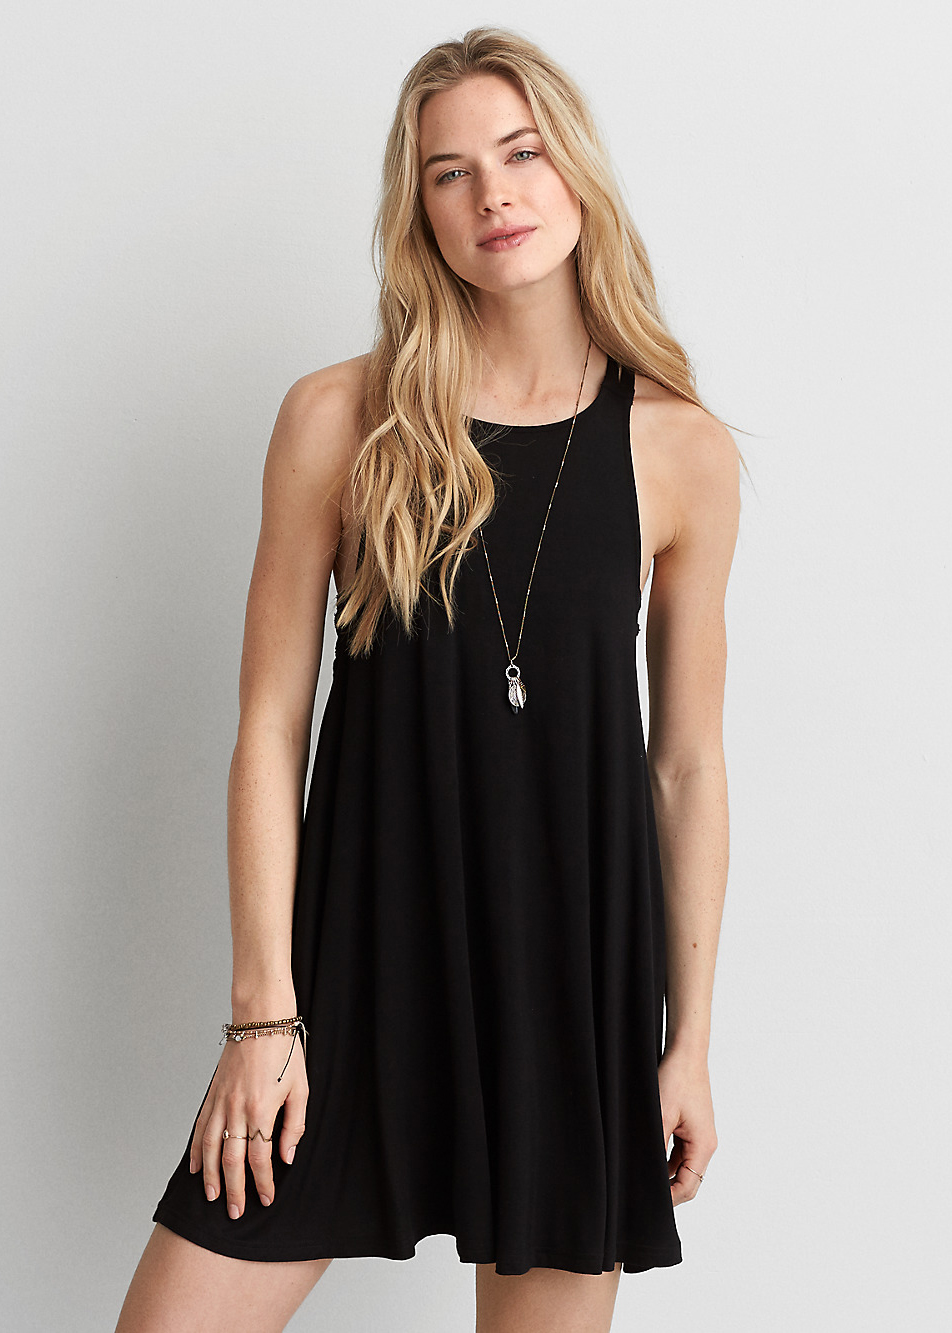 AEO Soft & Sexy Strappy Shift Dress - Casual Little Black Dresses